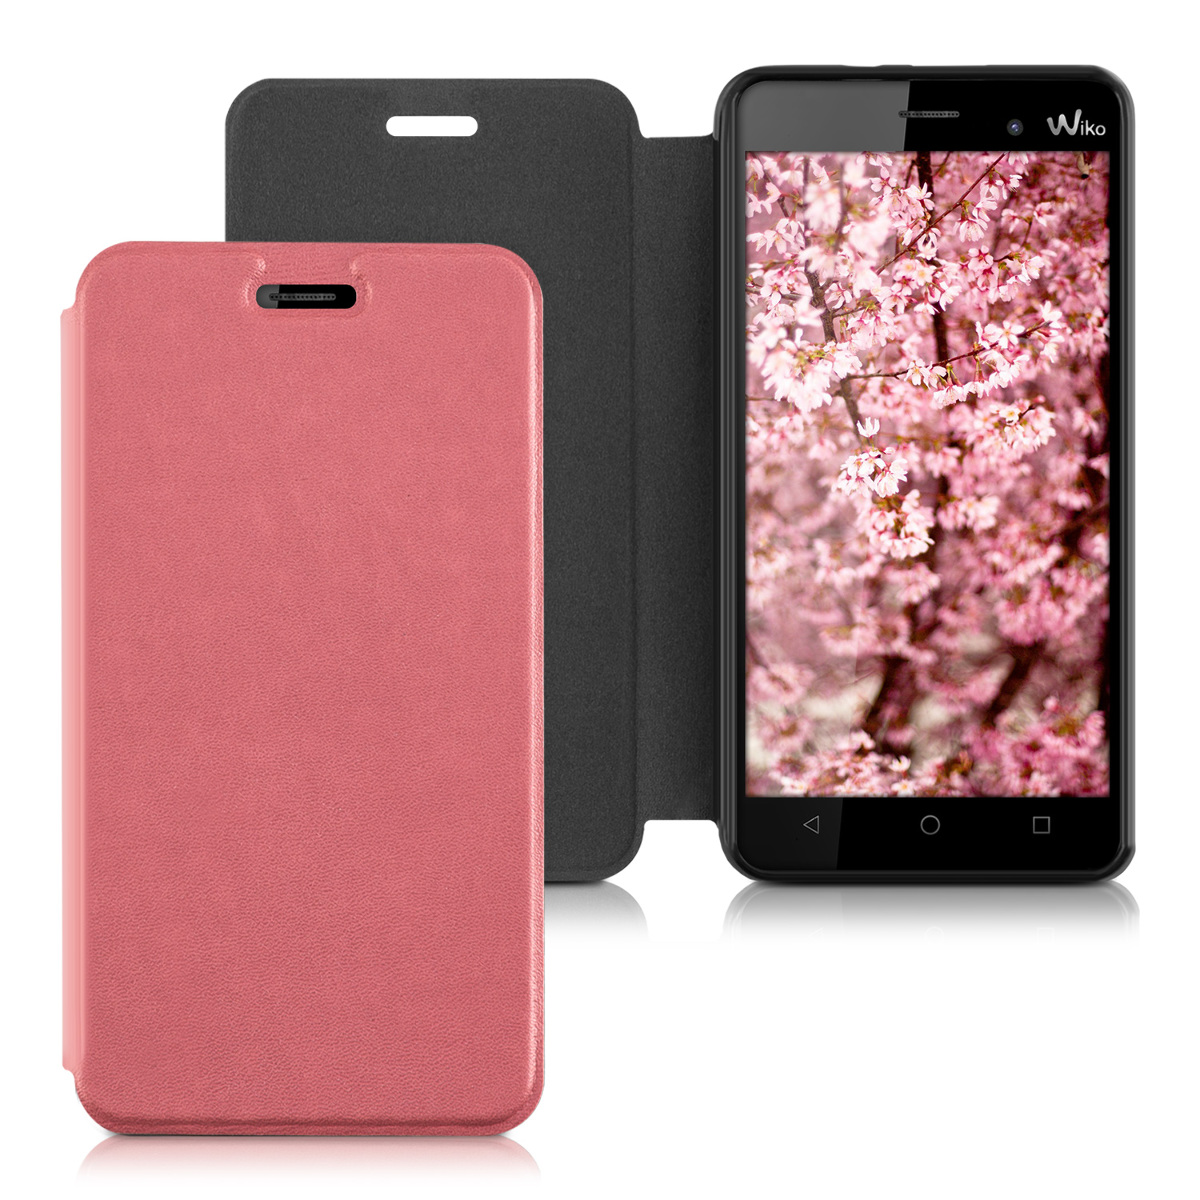 custodia flip per wiko lenny 3 rosa antico protettiva case cover astuccio ebay. Black Bedroom Furniture Sets. Home Design Ideas